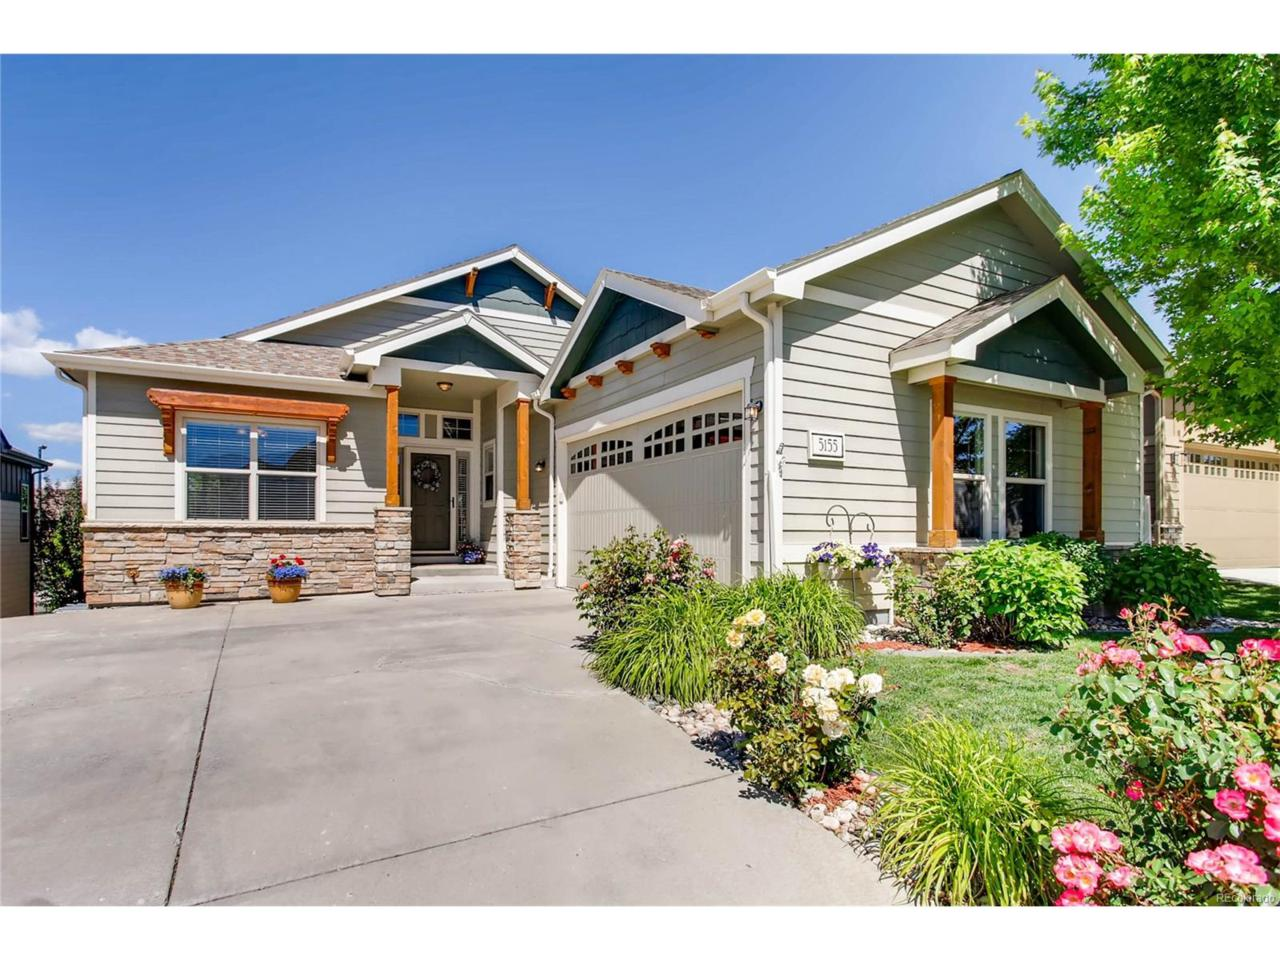 5155 Brandywine Drive, Loveland, CO 80538 (MLS #3521793) :: 8z Real Estate